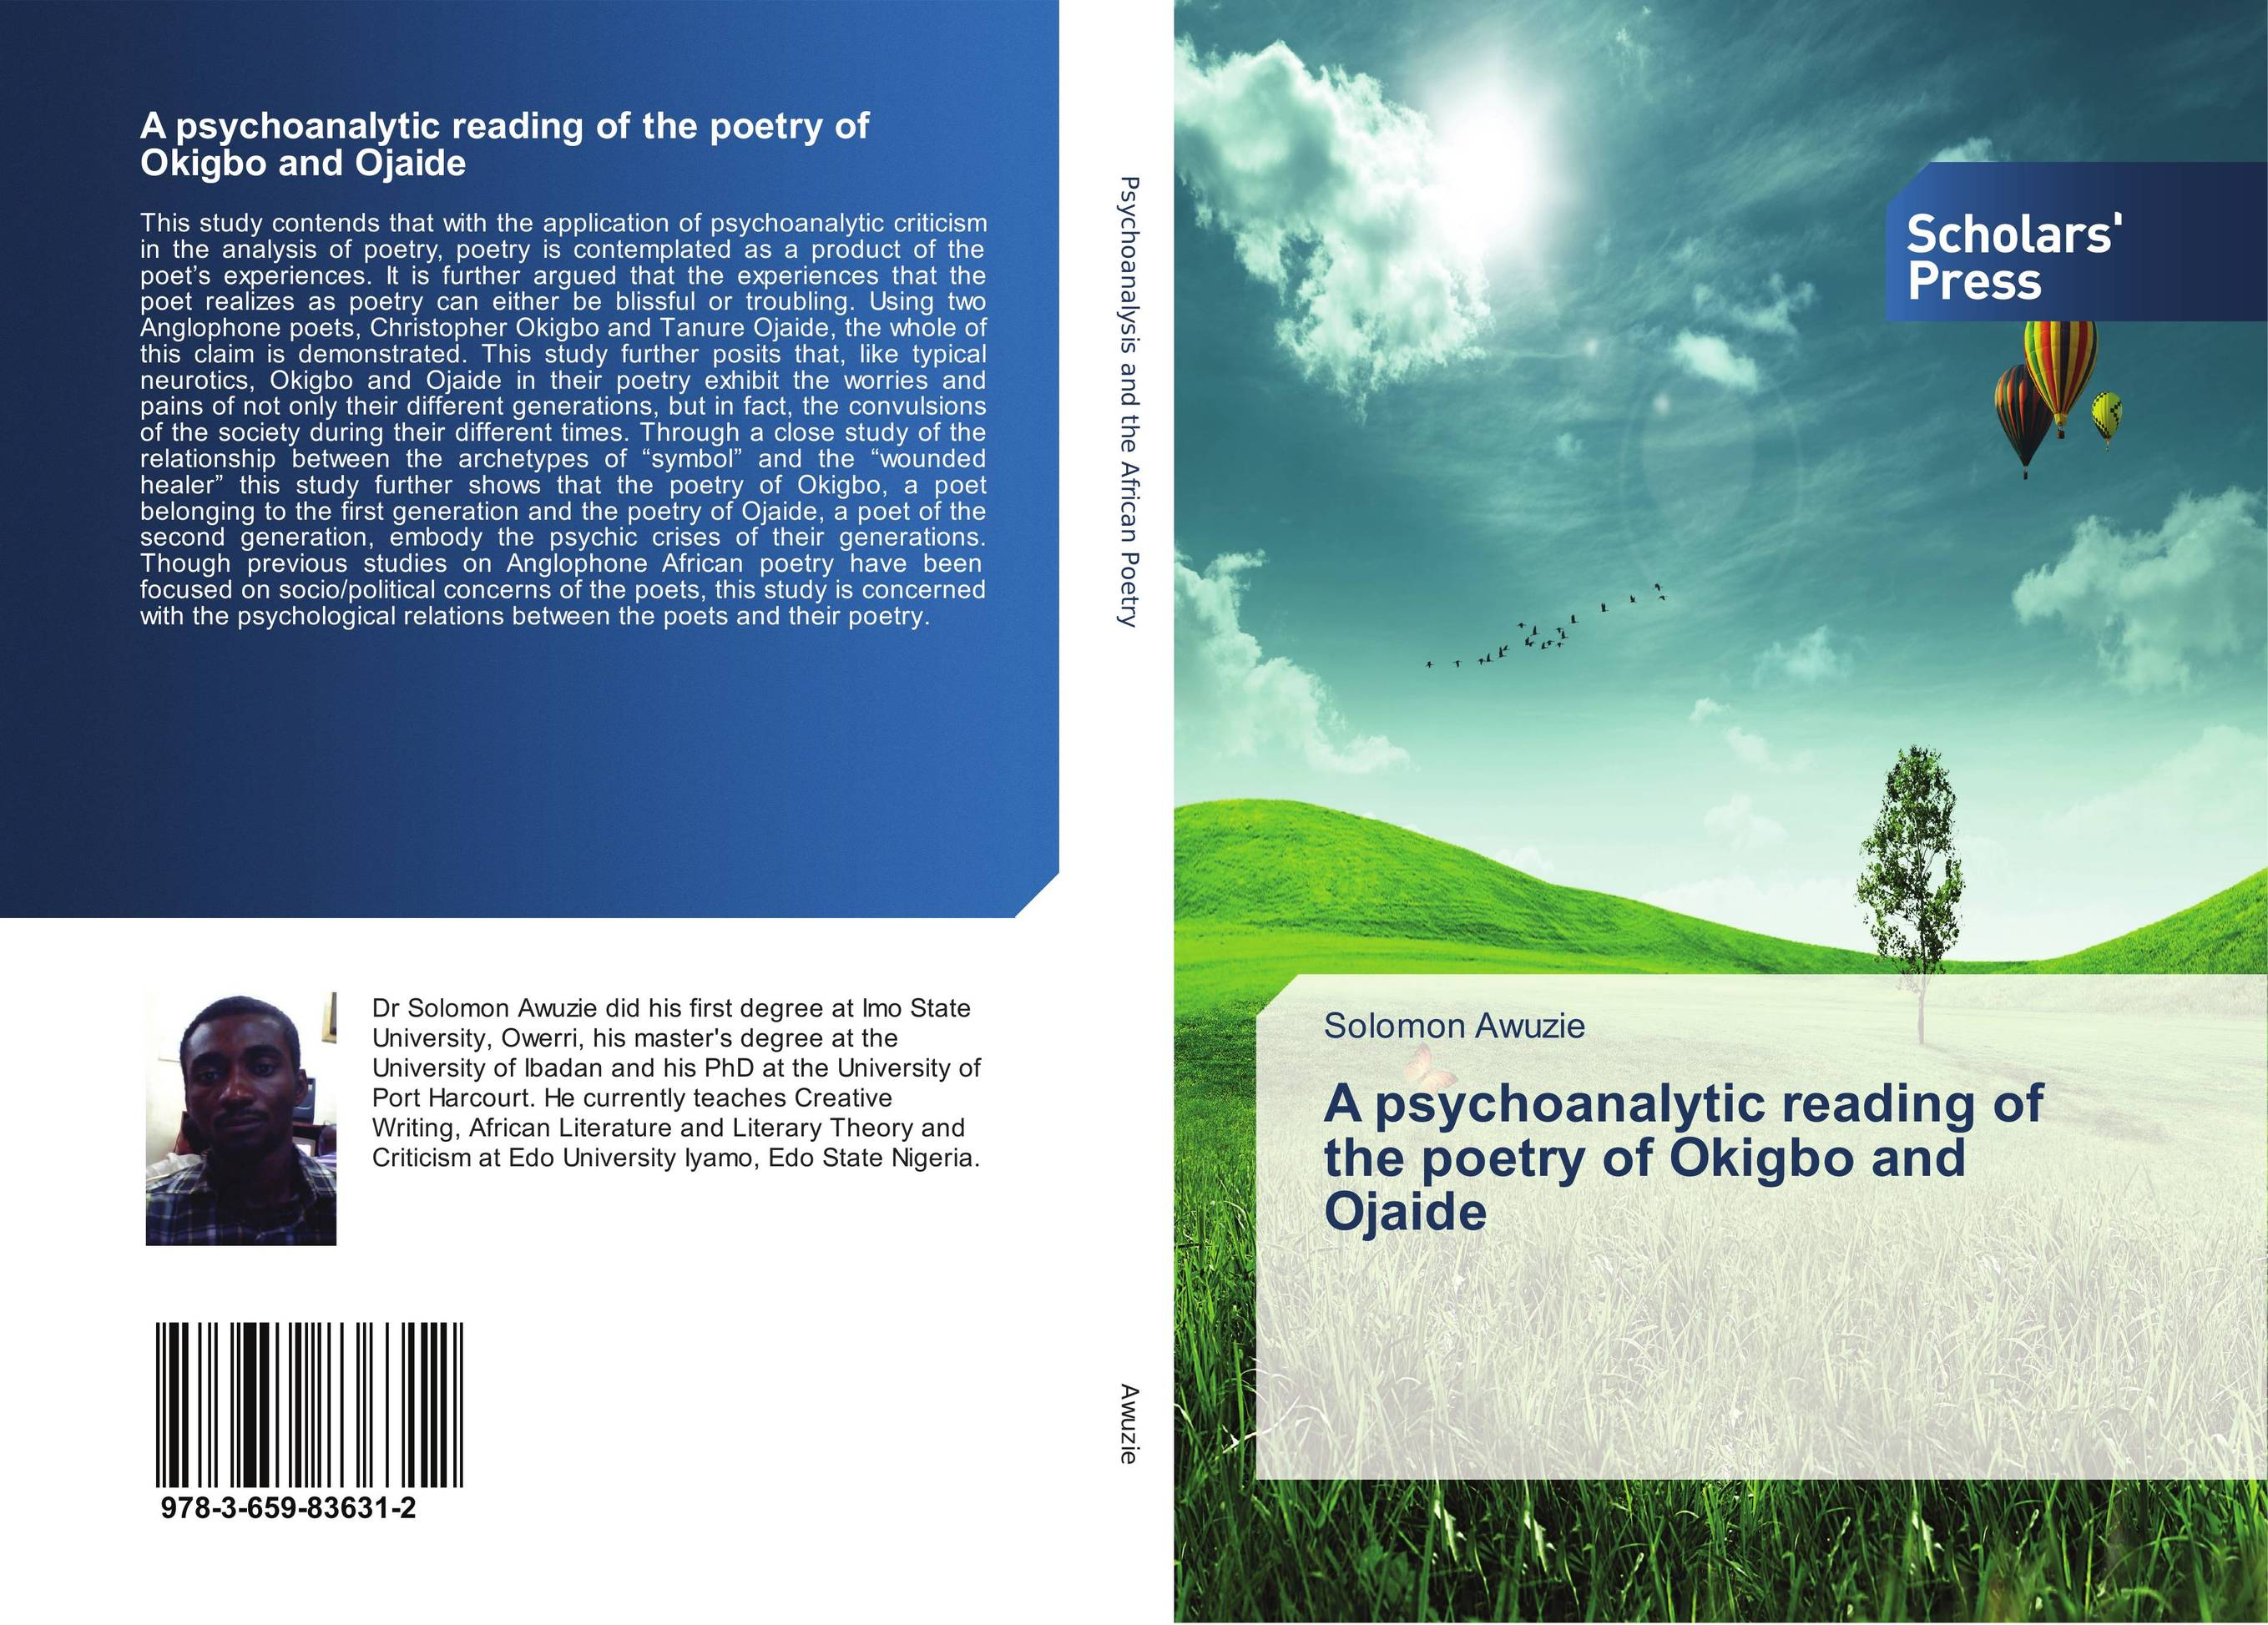 A psychoanalytic reading of the poetry of Okigbo and Ojaide the poetry of greek tragedy